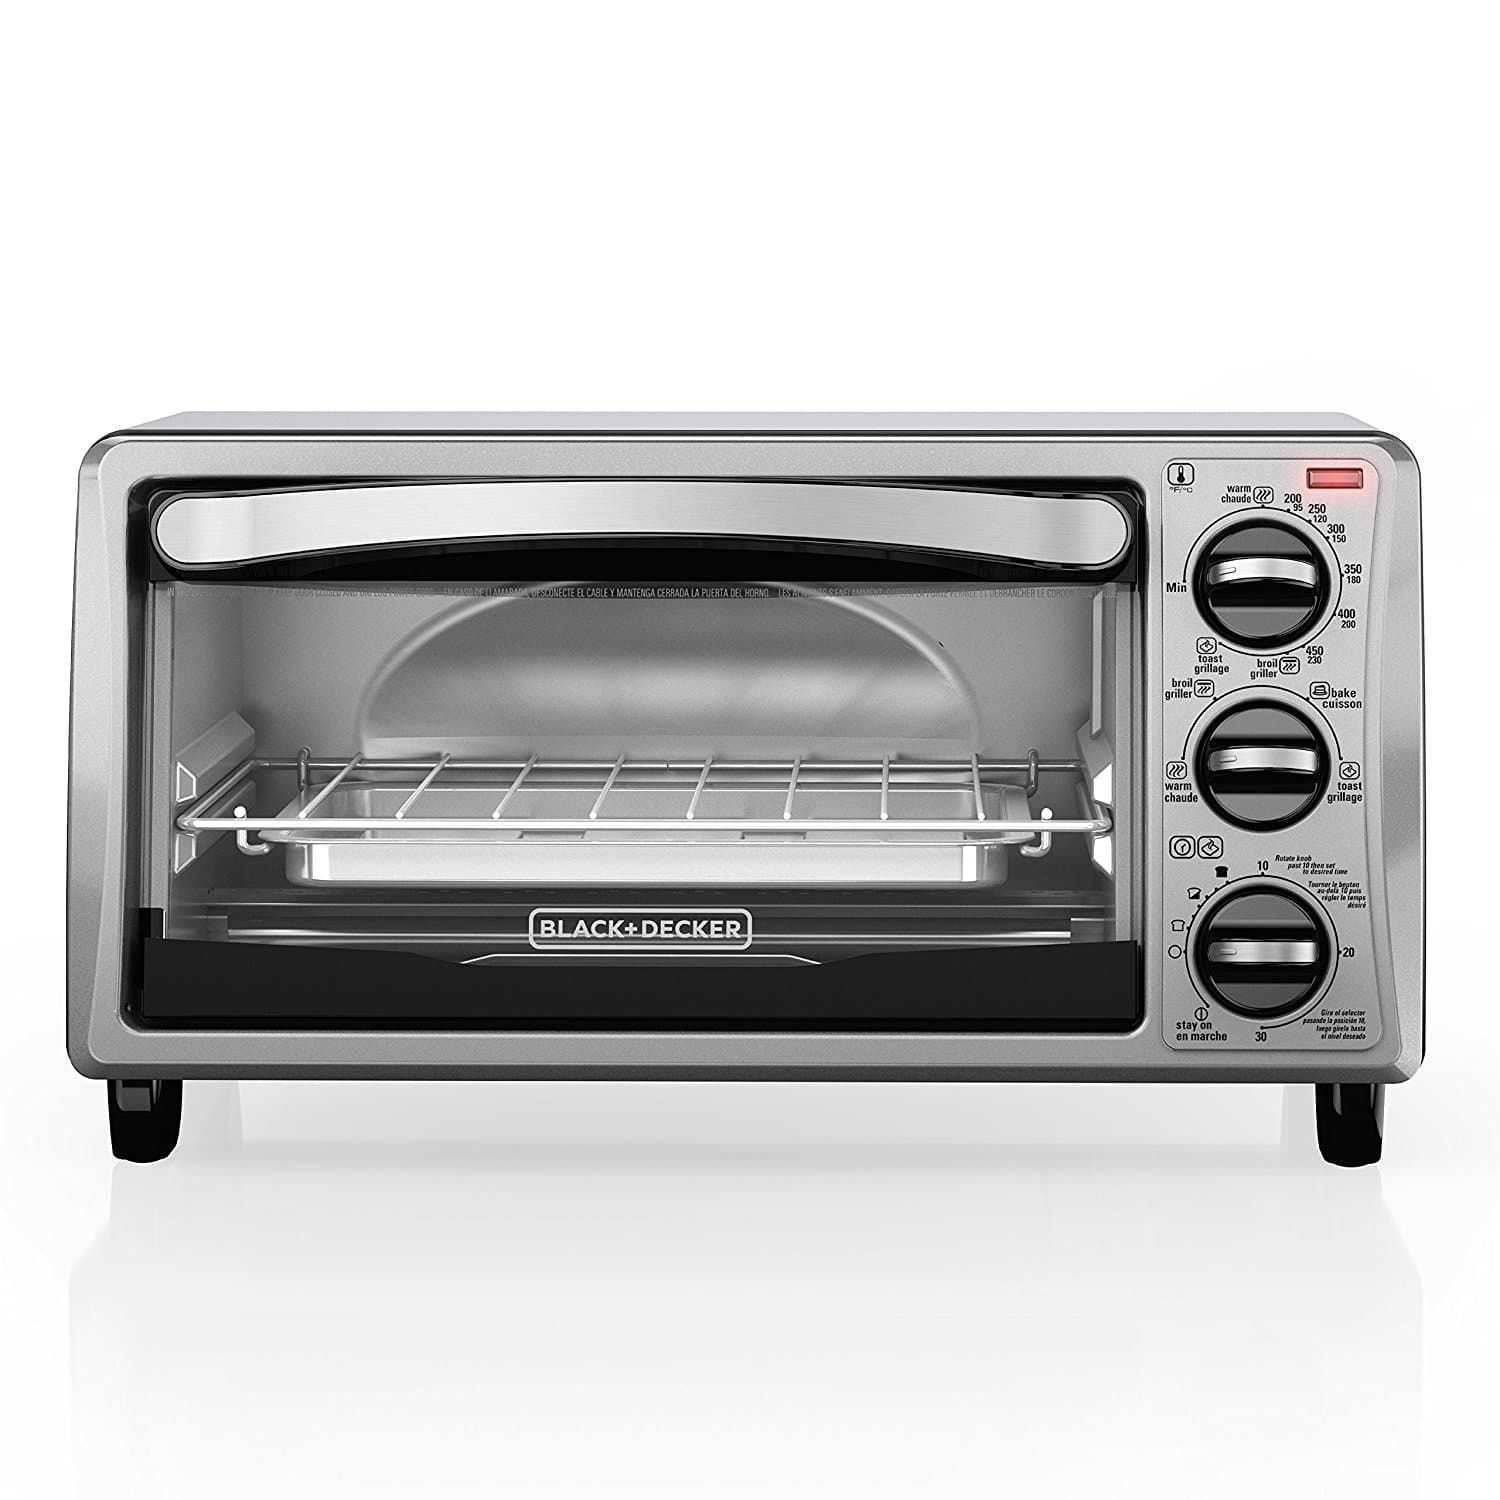 Top 10 Best Oven Toaster In 2020 Hqreview Toaster Toaster Oven Convection Toaster Oven